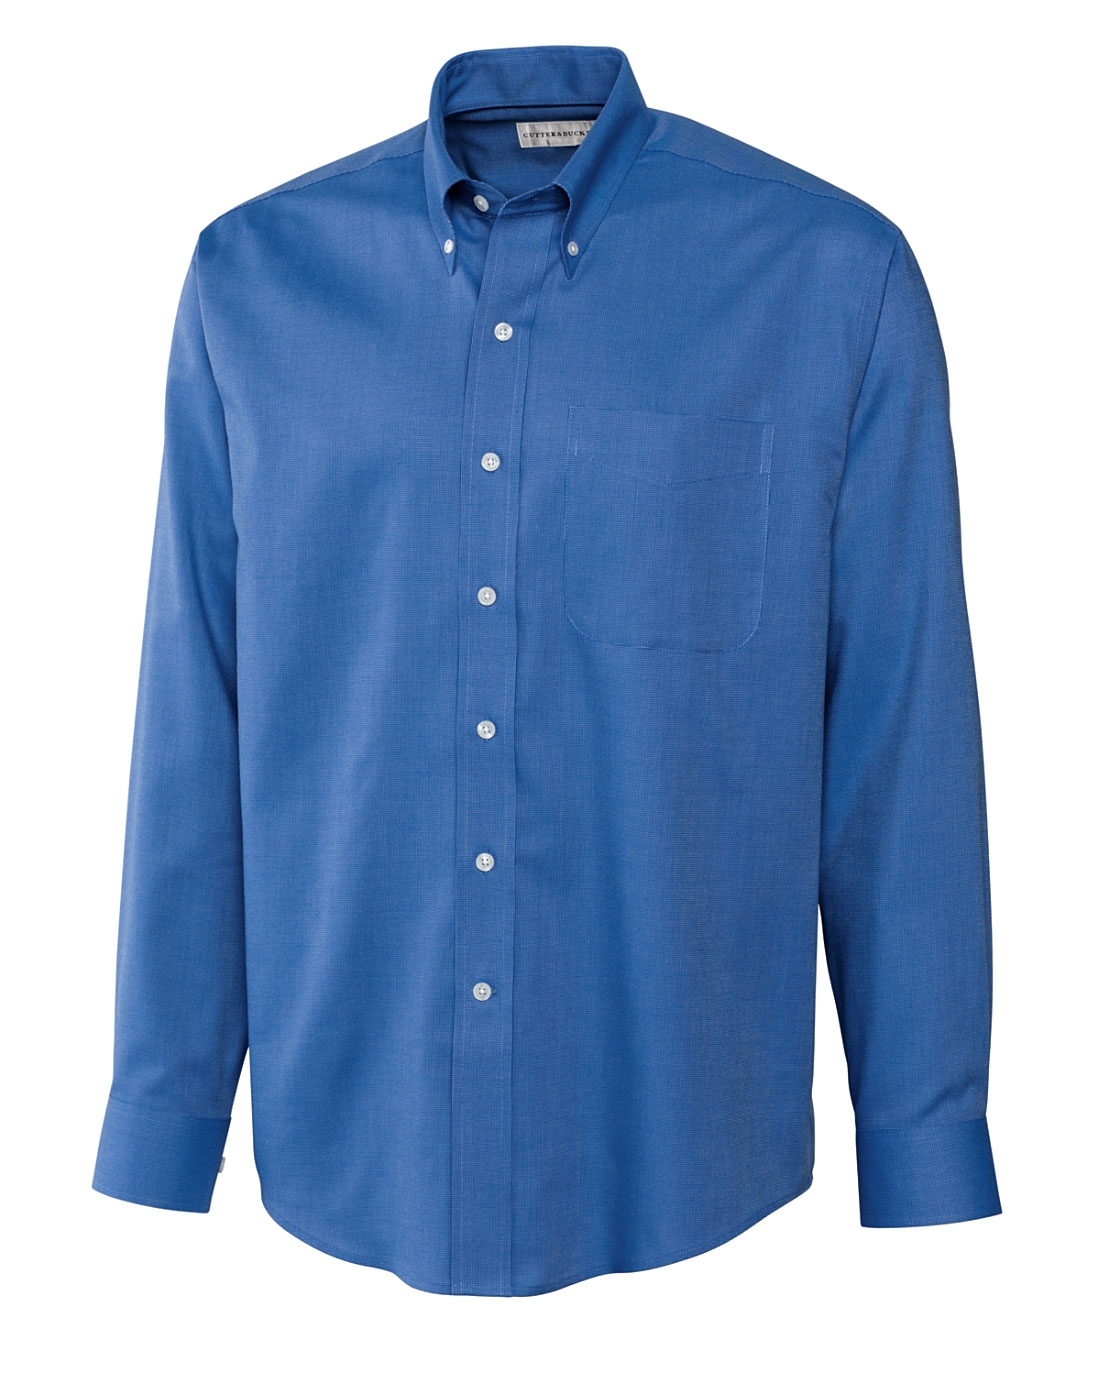 Mens Easy Care Nailshead Dress Shirt